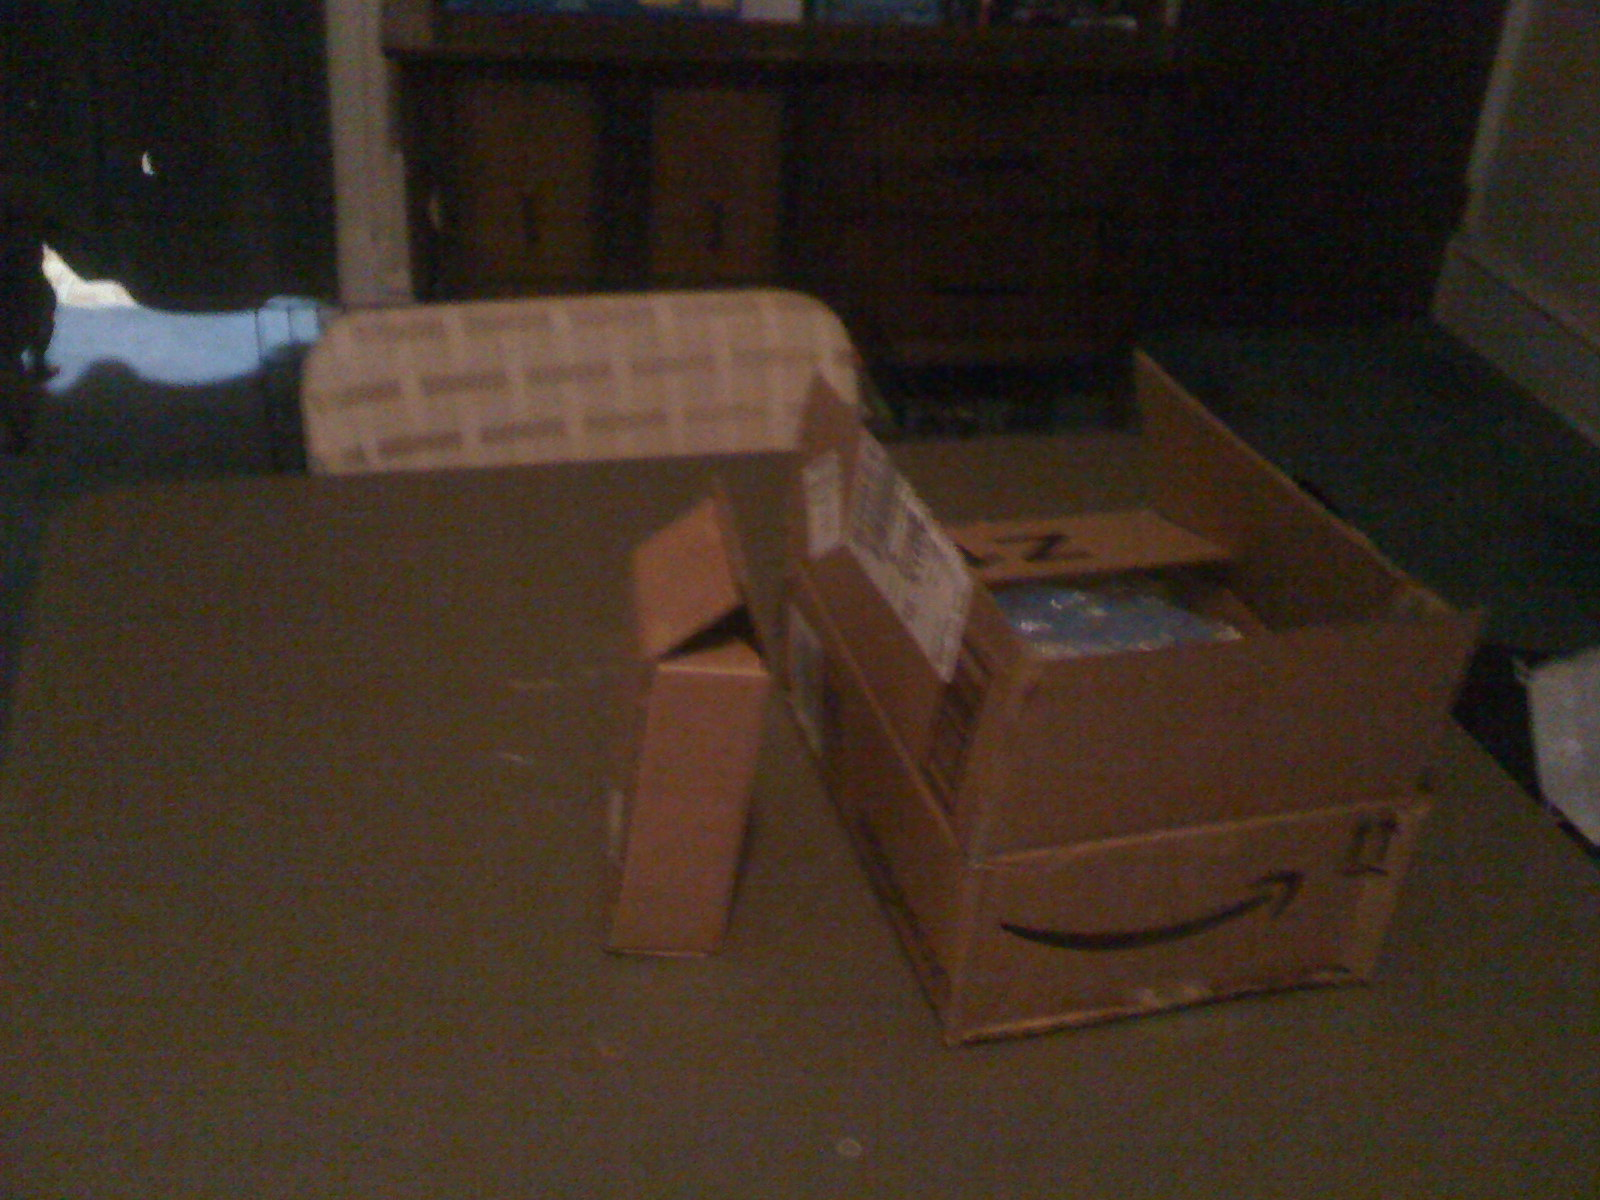 Within that box, a significantly smaller box.